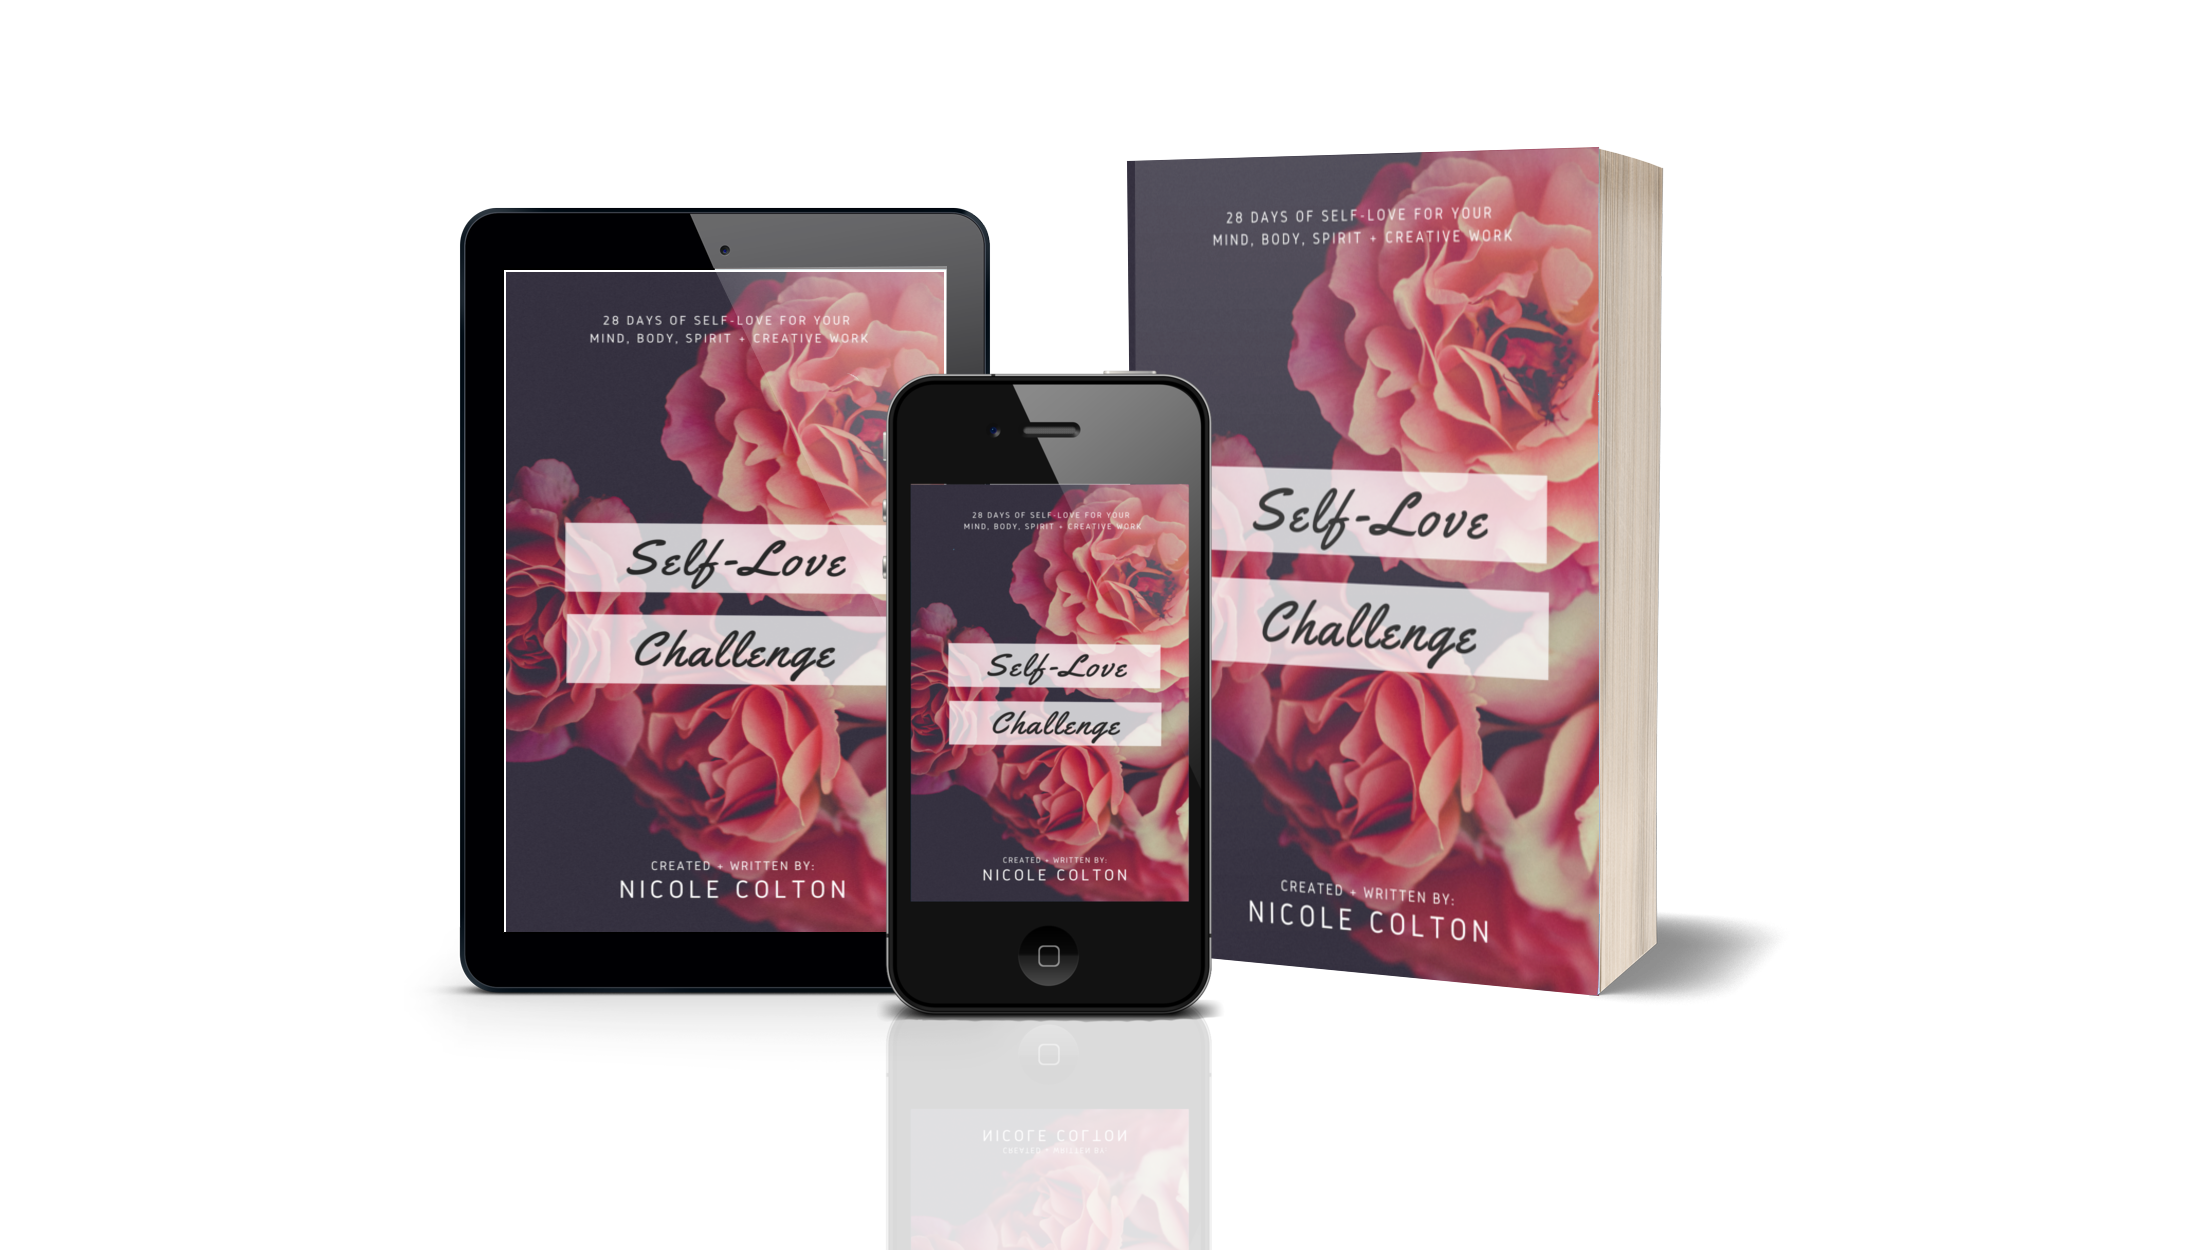 self love challenge book cover art